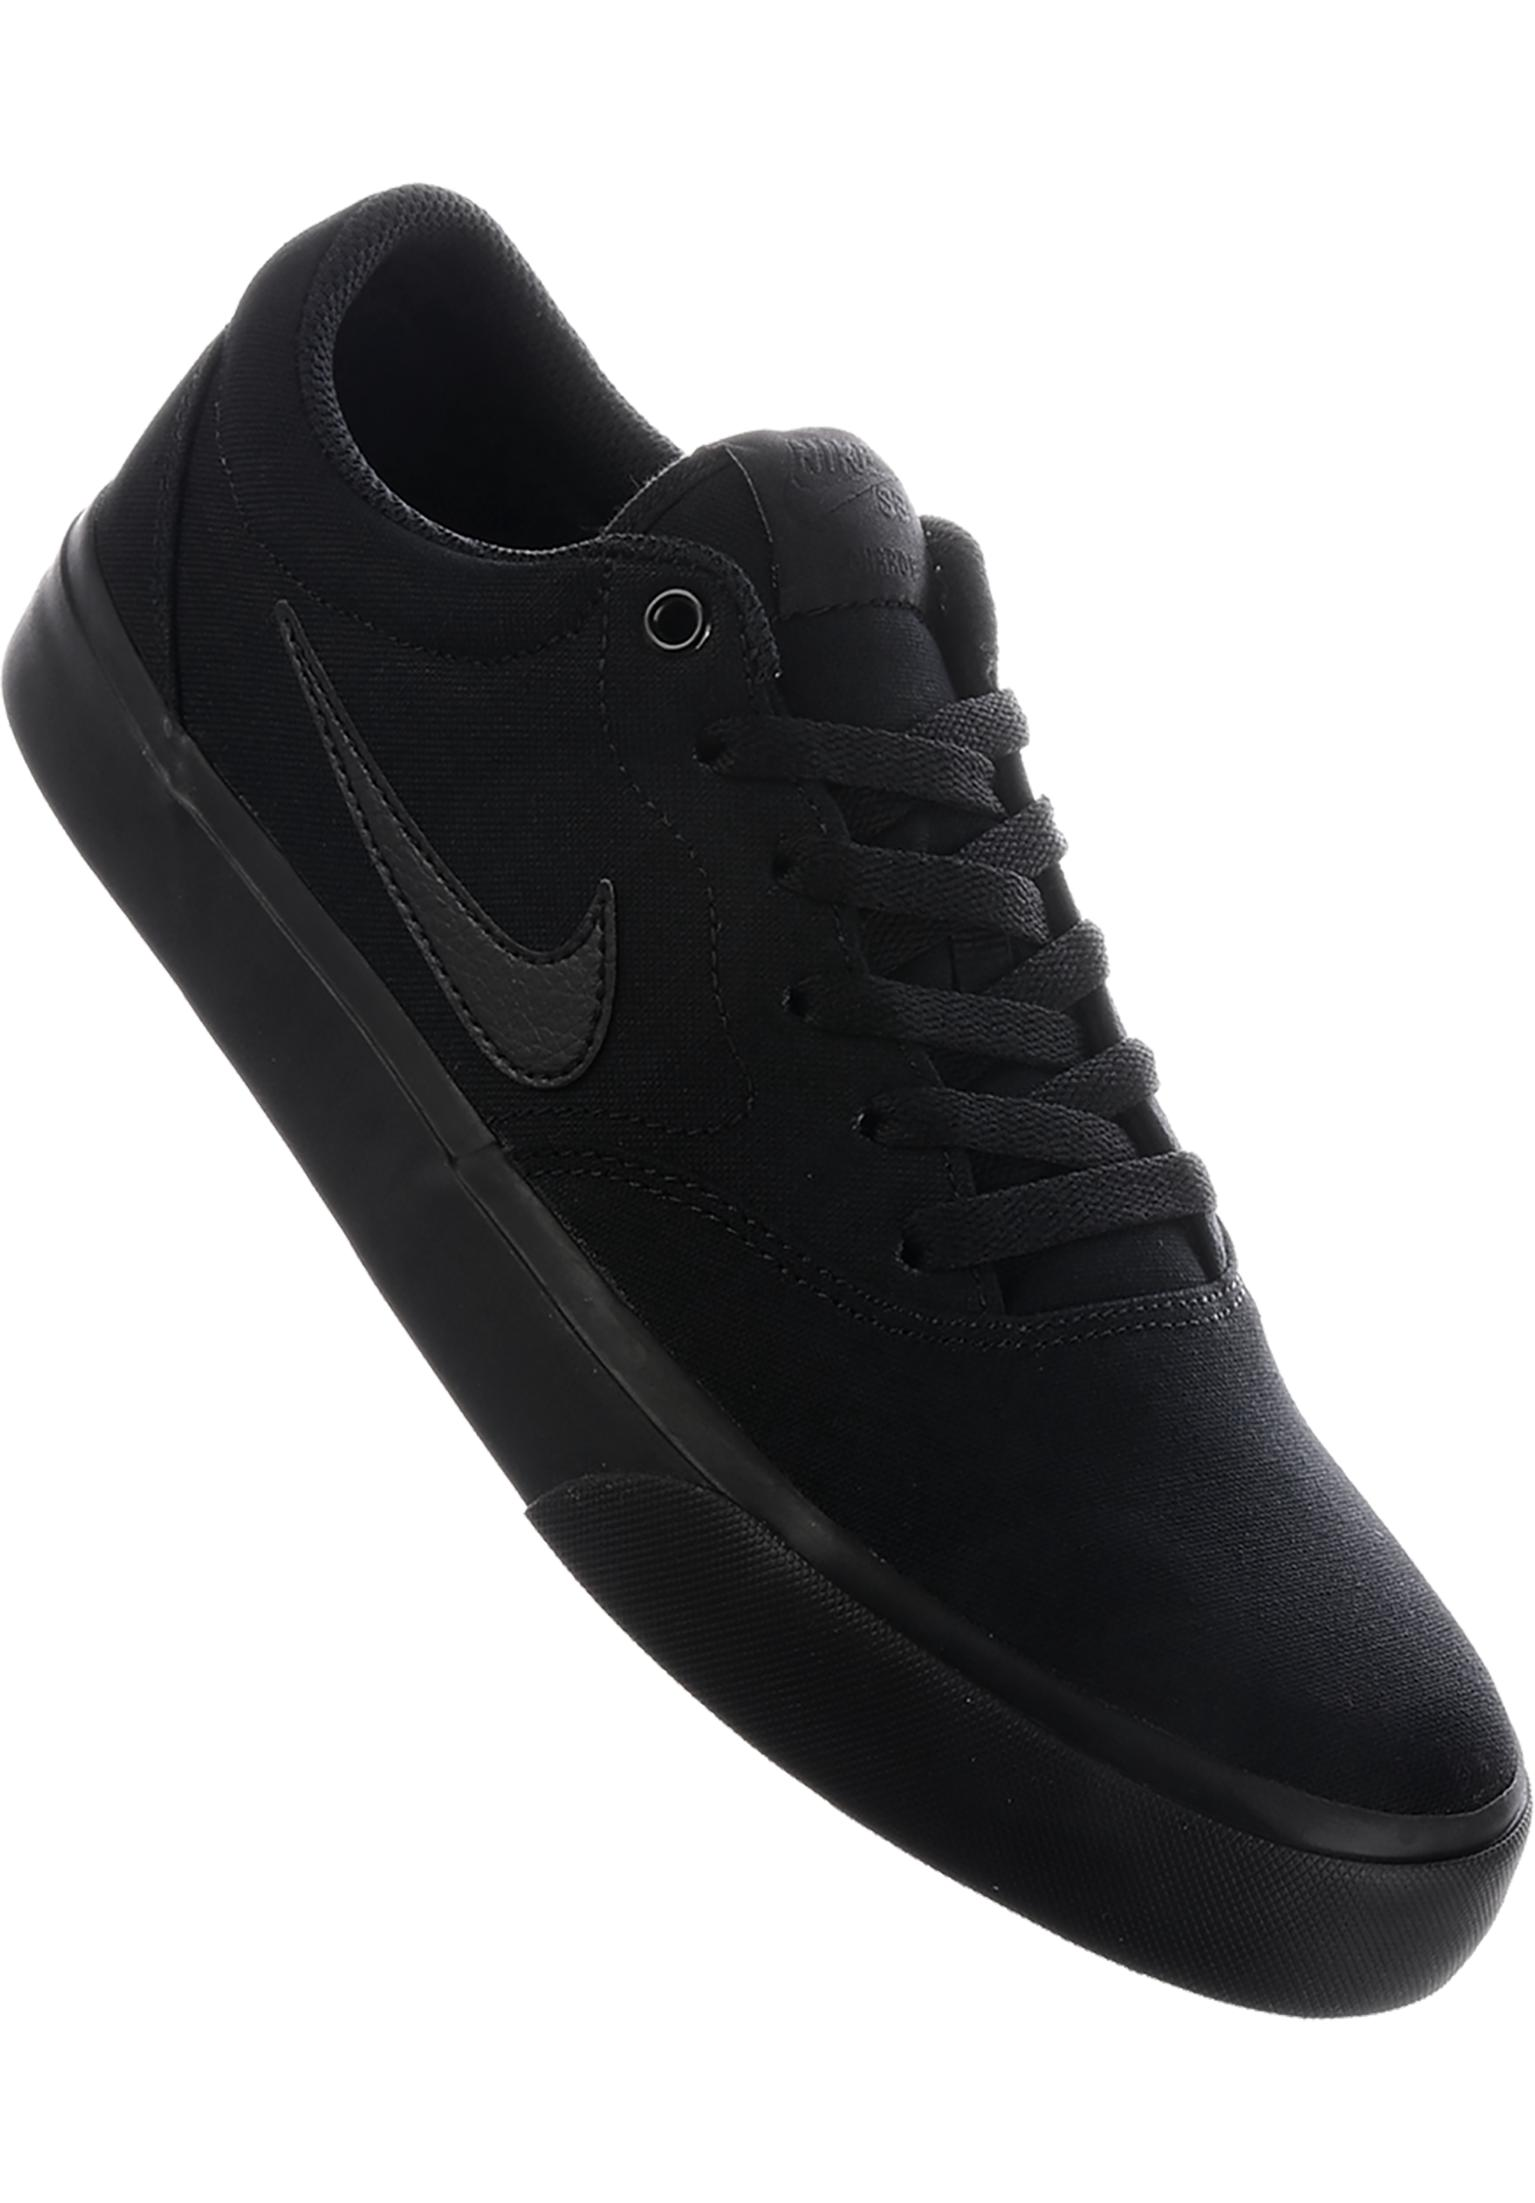 8339bebe7a96 Charge Solarsoft Nike SB All Shoes in black-black for Men